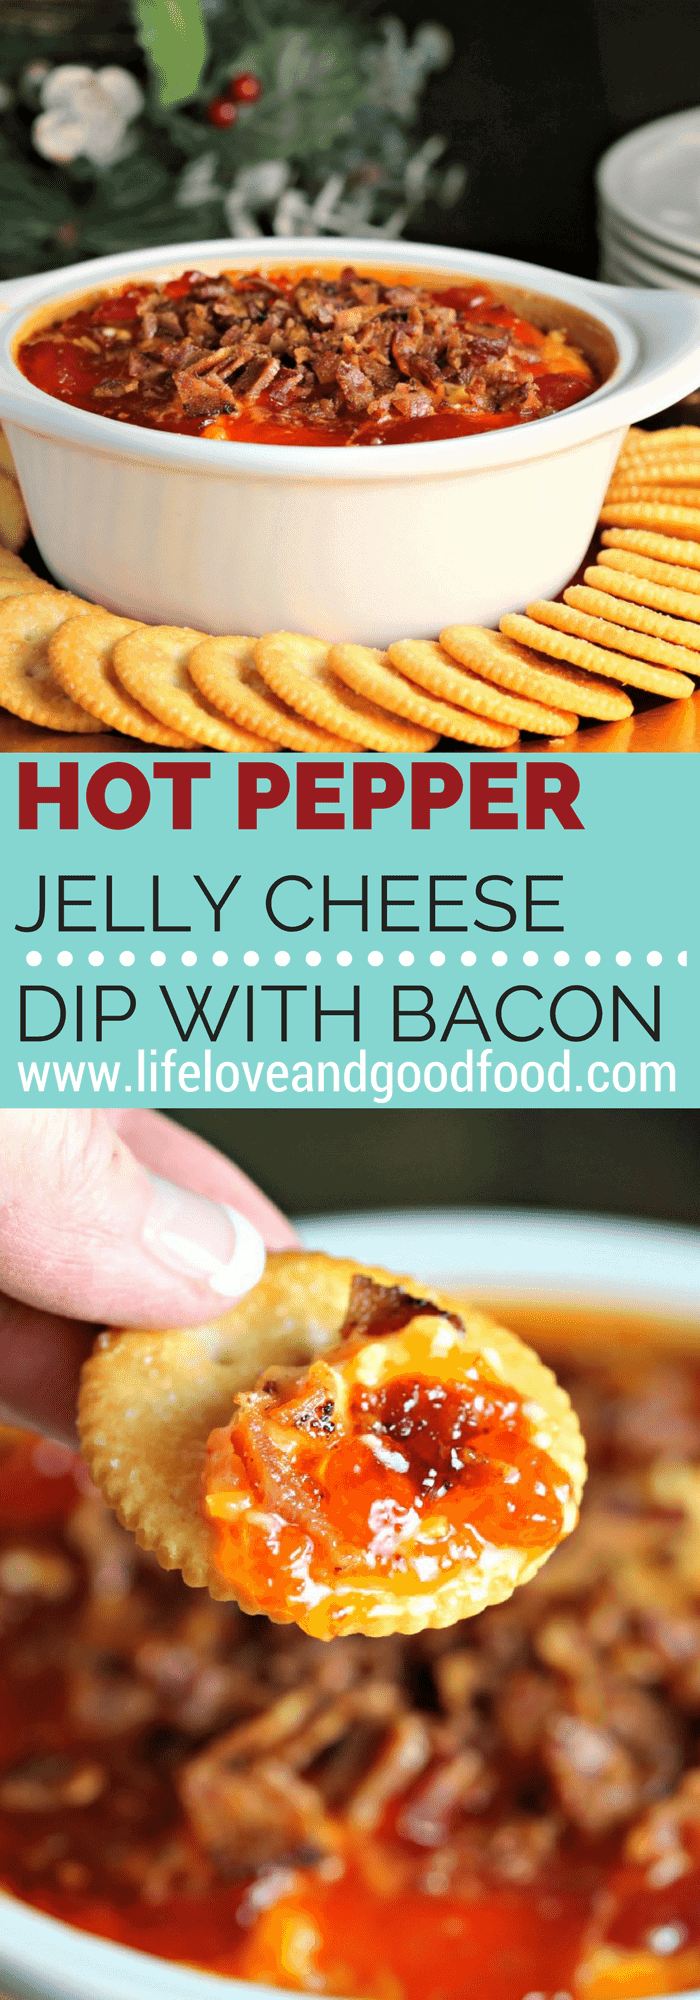 Sweet and salty with a little bit of heat, this Hot Pepper Jelly Cheese Dip with Bacon is irresistible at holiday parties. #hotappetizer #cheesedip